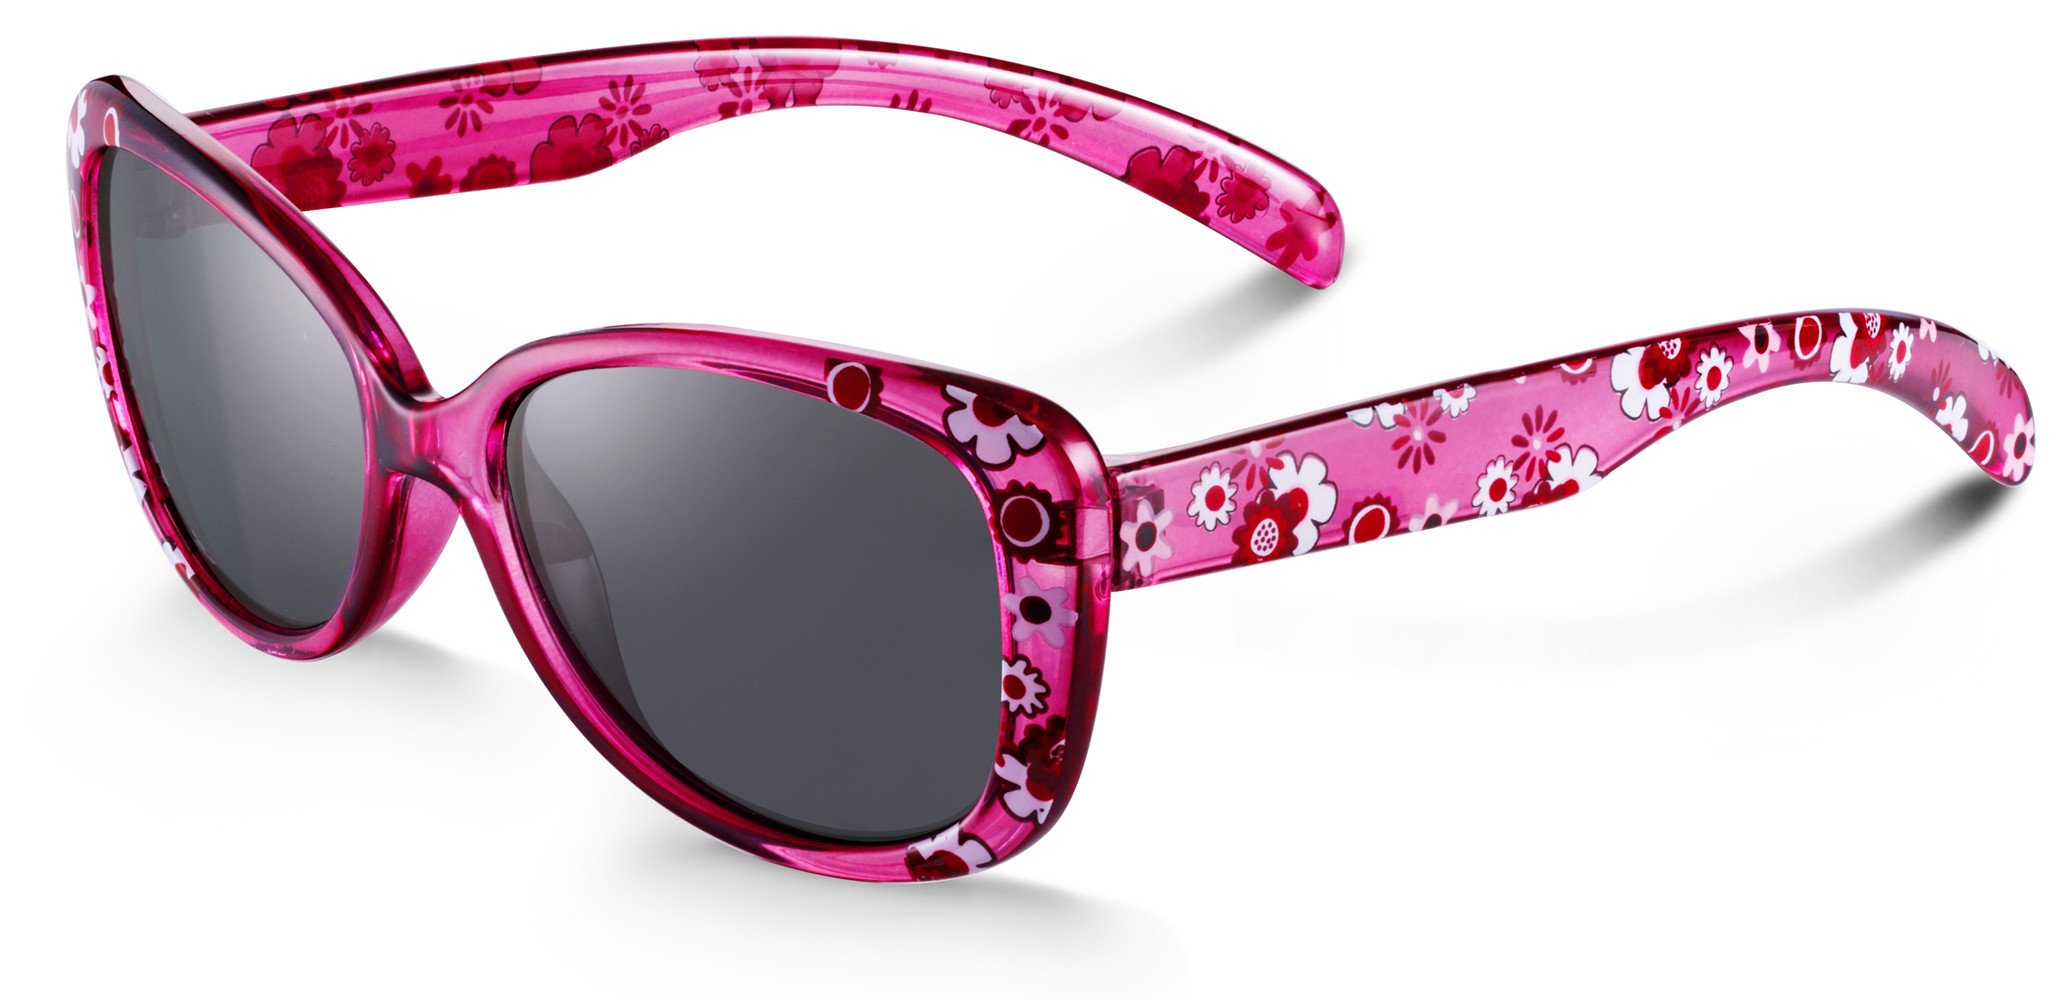 Blossom Shiny Crystal Cute Sunglasses for Girls Age 2-8 - 100% UV400 Protection Reduces Glare